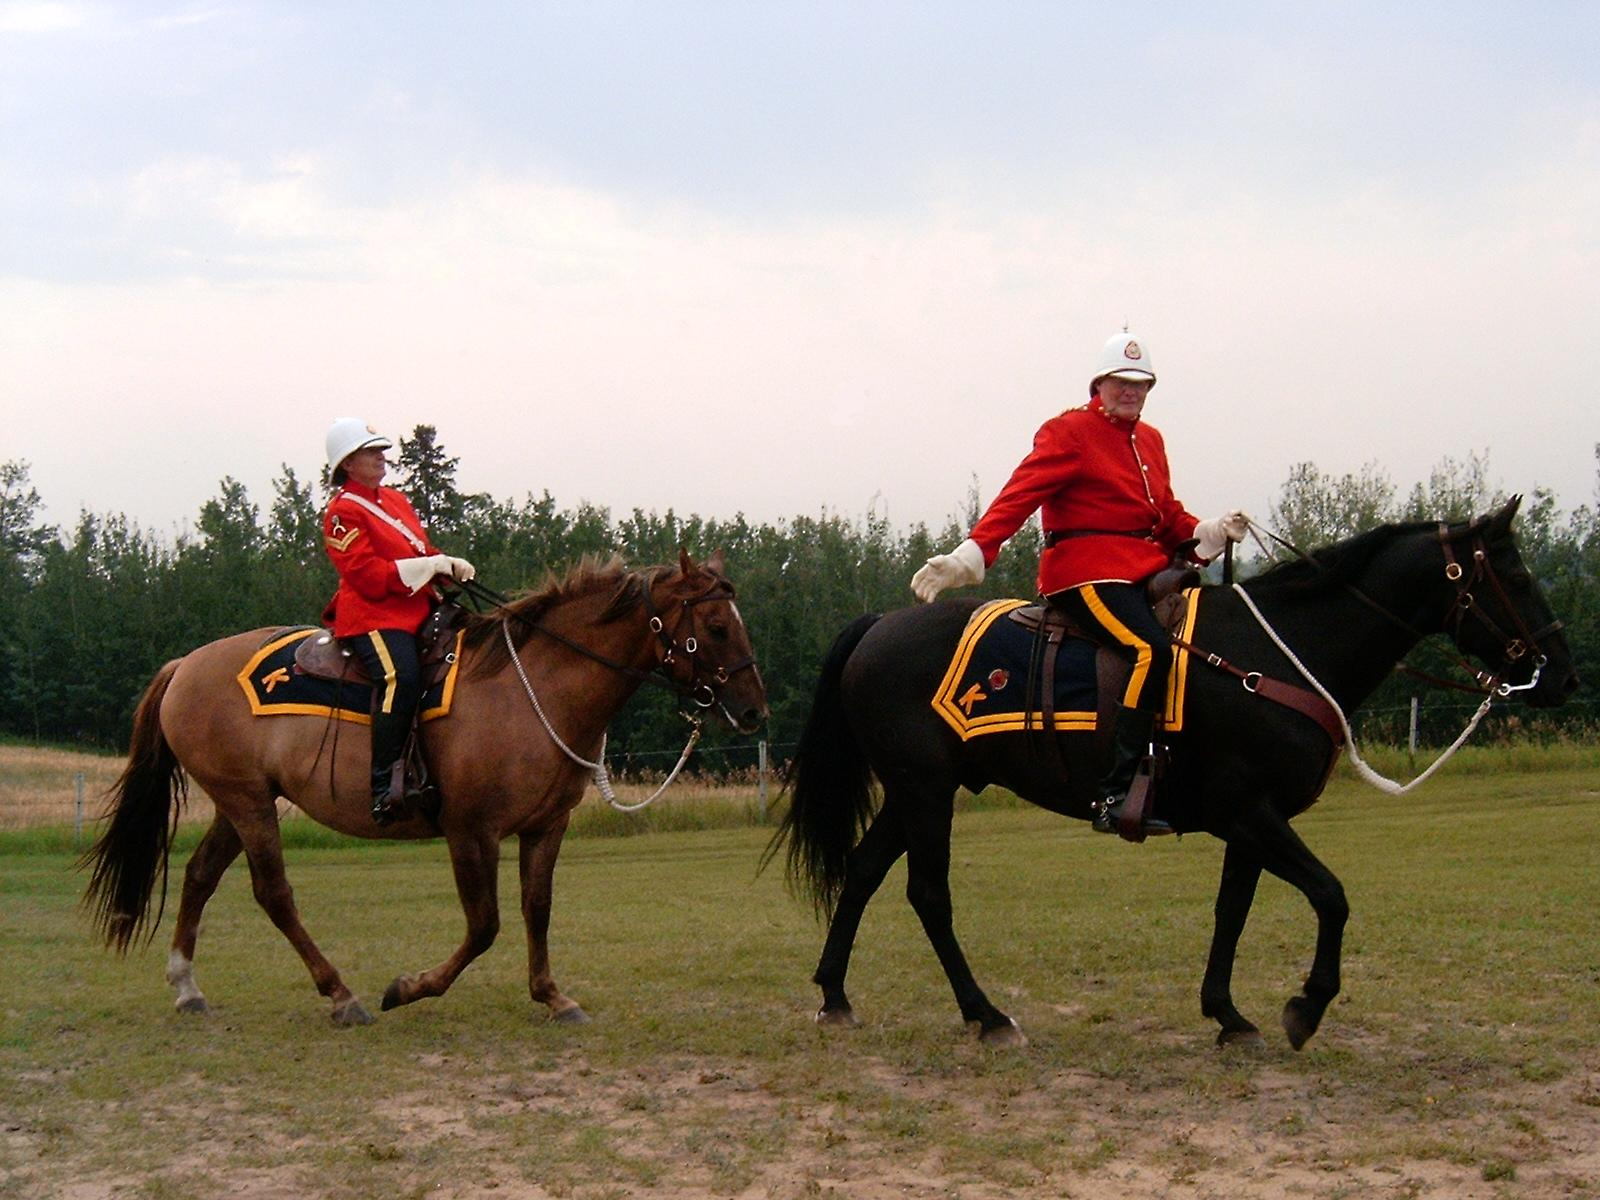 North West Mounted Police Drawing Reenactors Portraying The Nwmp